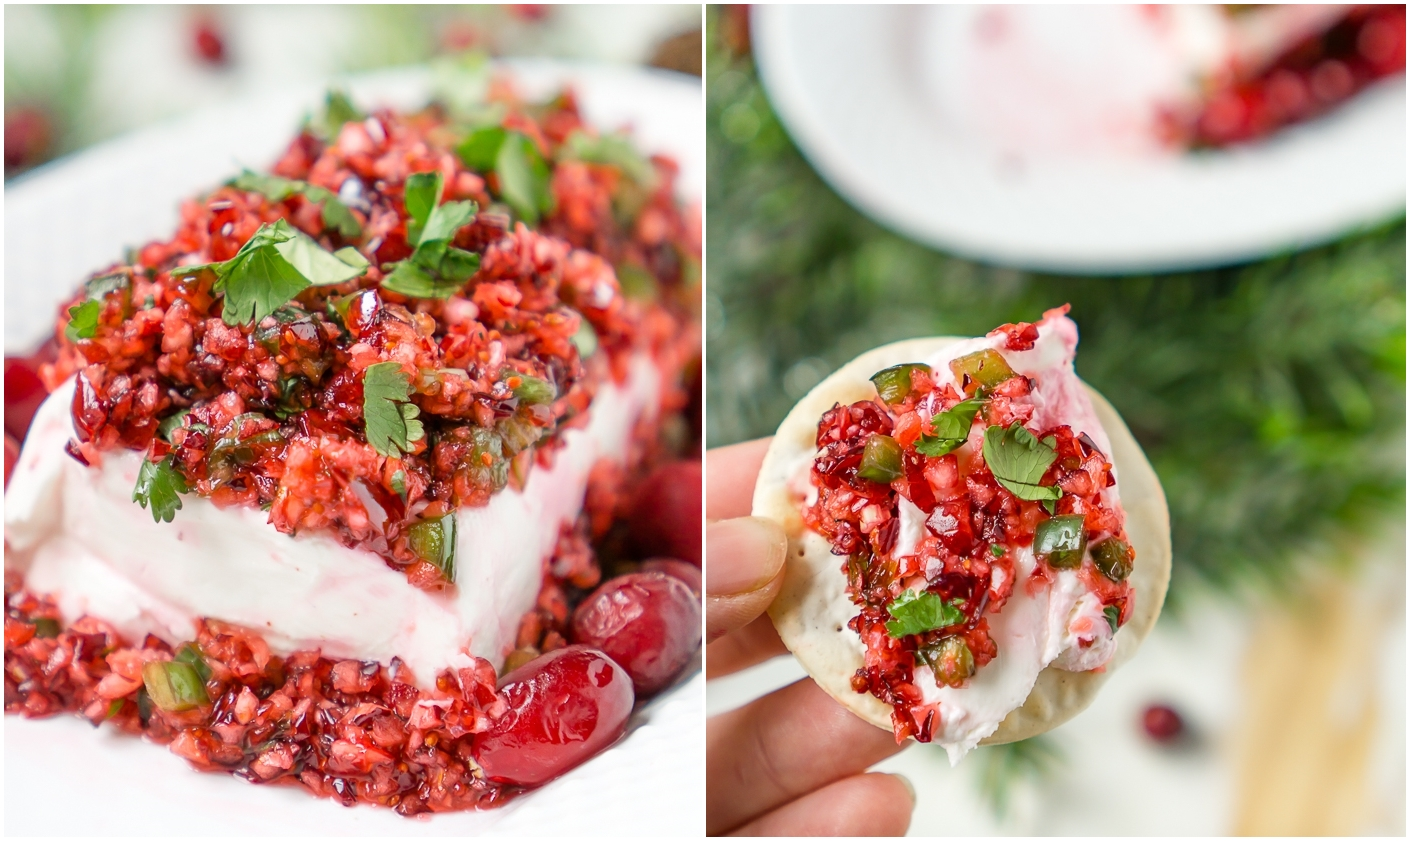 JALAPENO CRANBERRY CREAM CHEESE DIP